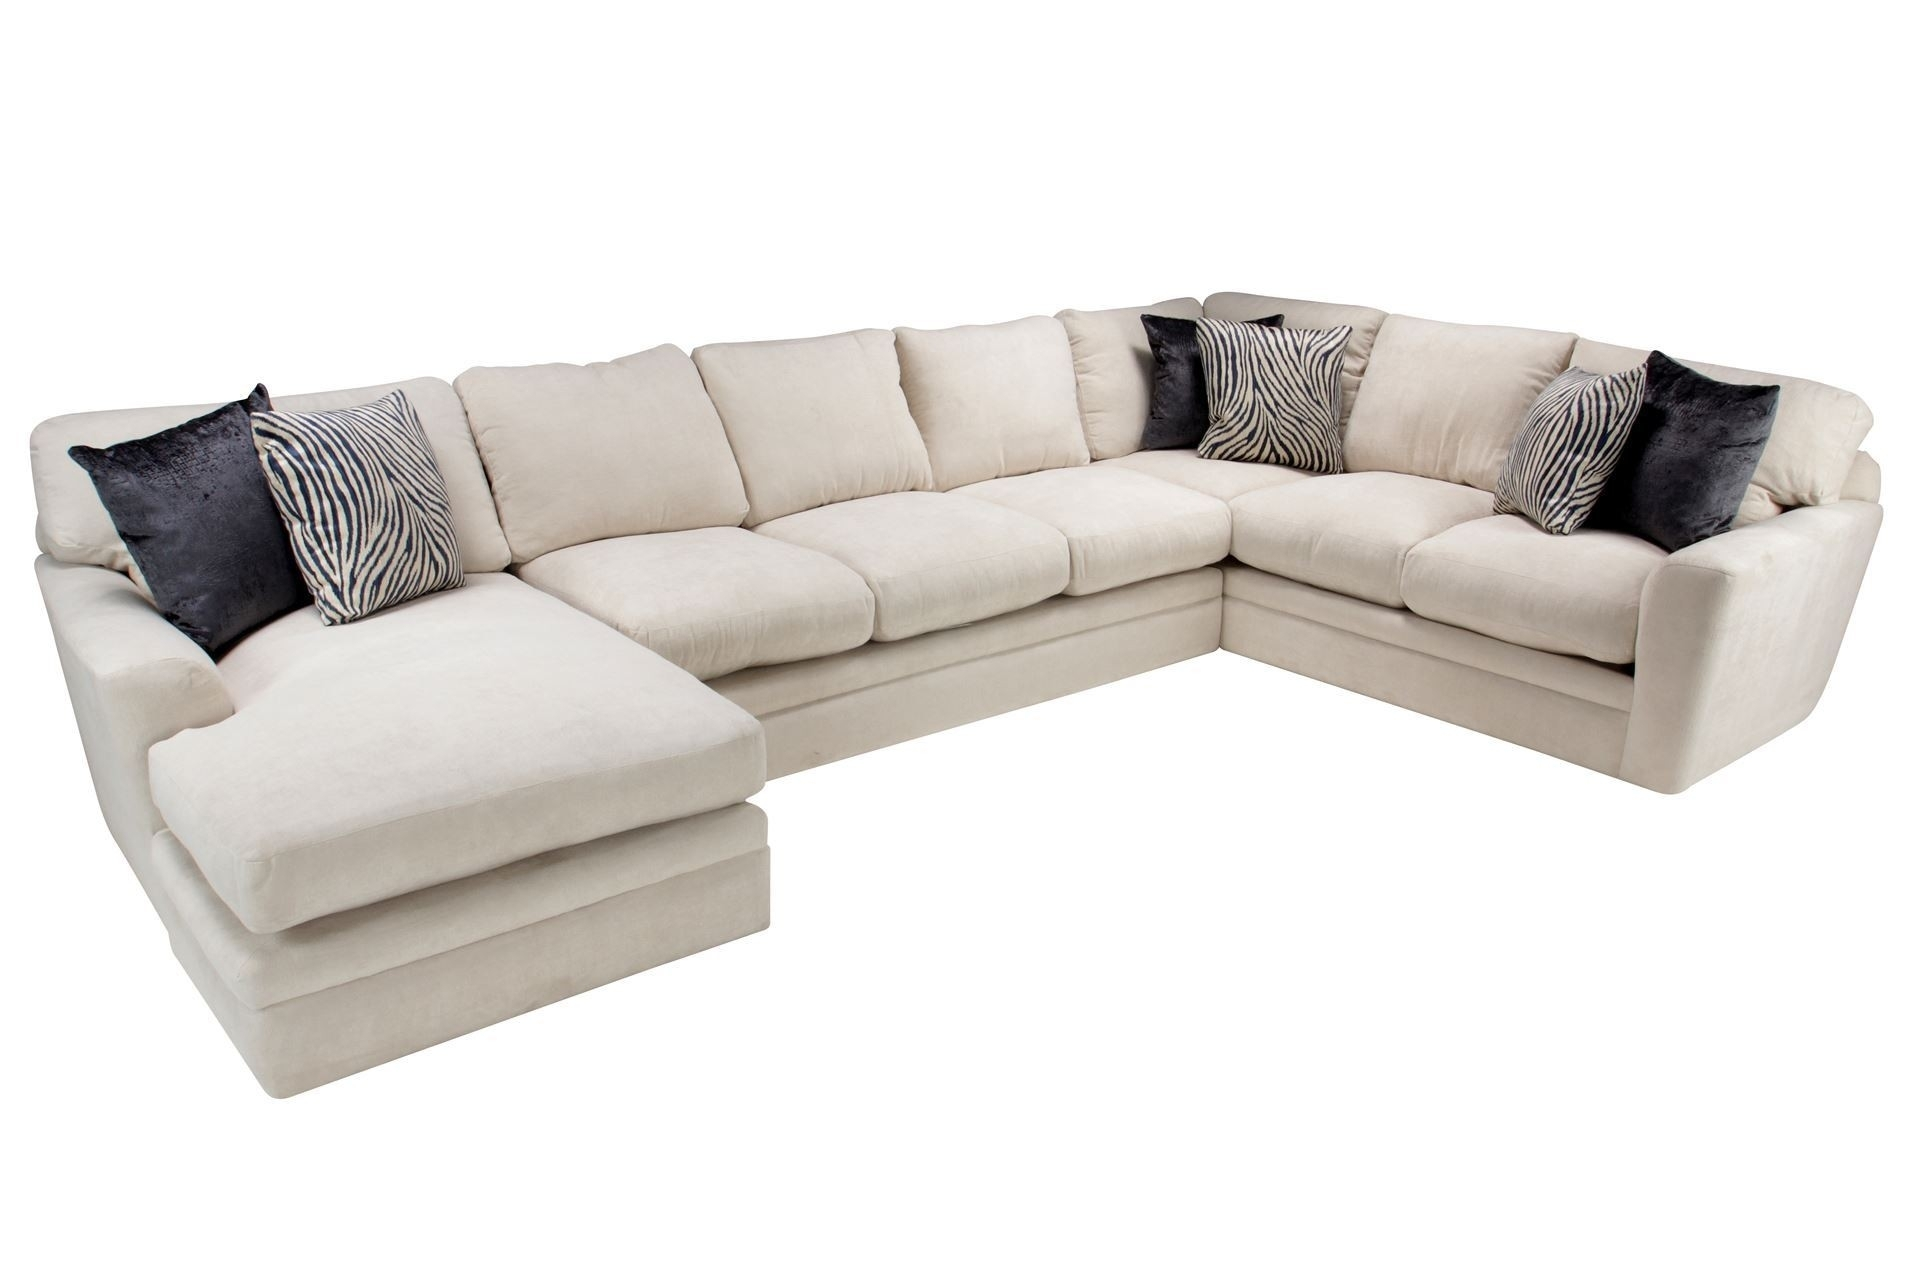 Living Spaces Sectional Sofas Delano 2 Piece W Laf Oversized Chaise Intended For Delano 2 Piece Sectionals With Laf Oversized Chaise (Image 20 of 25)